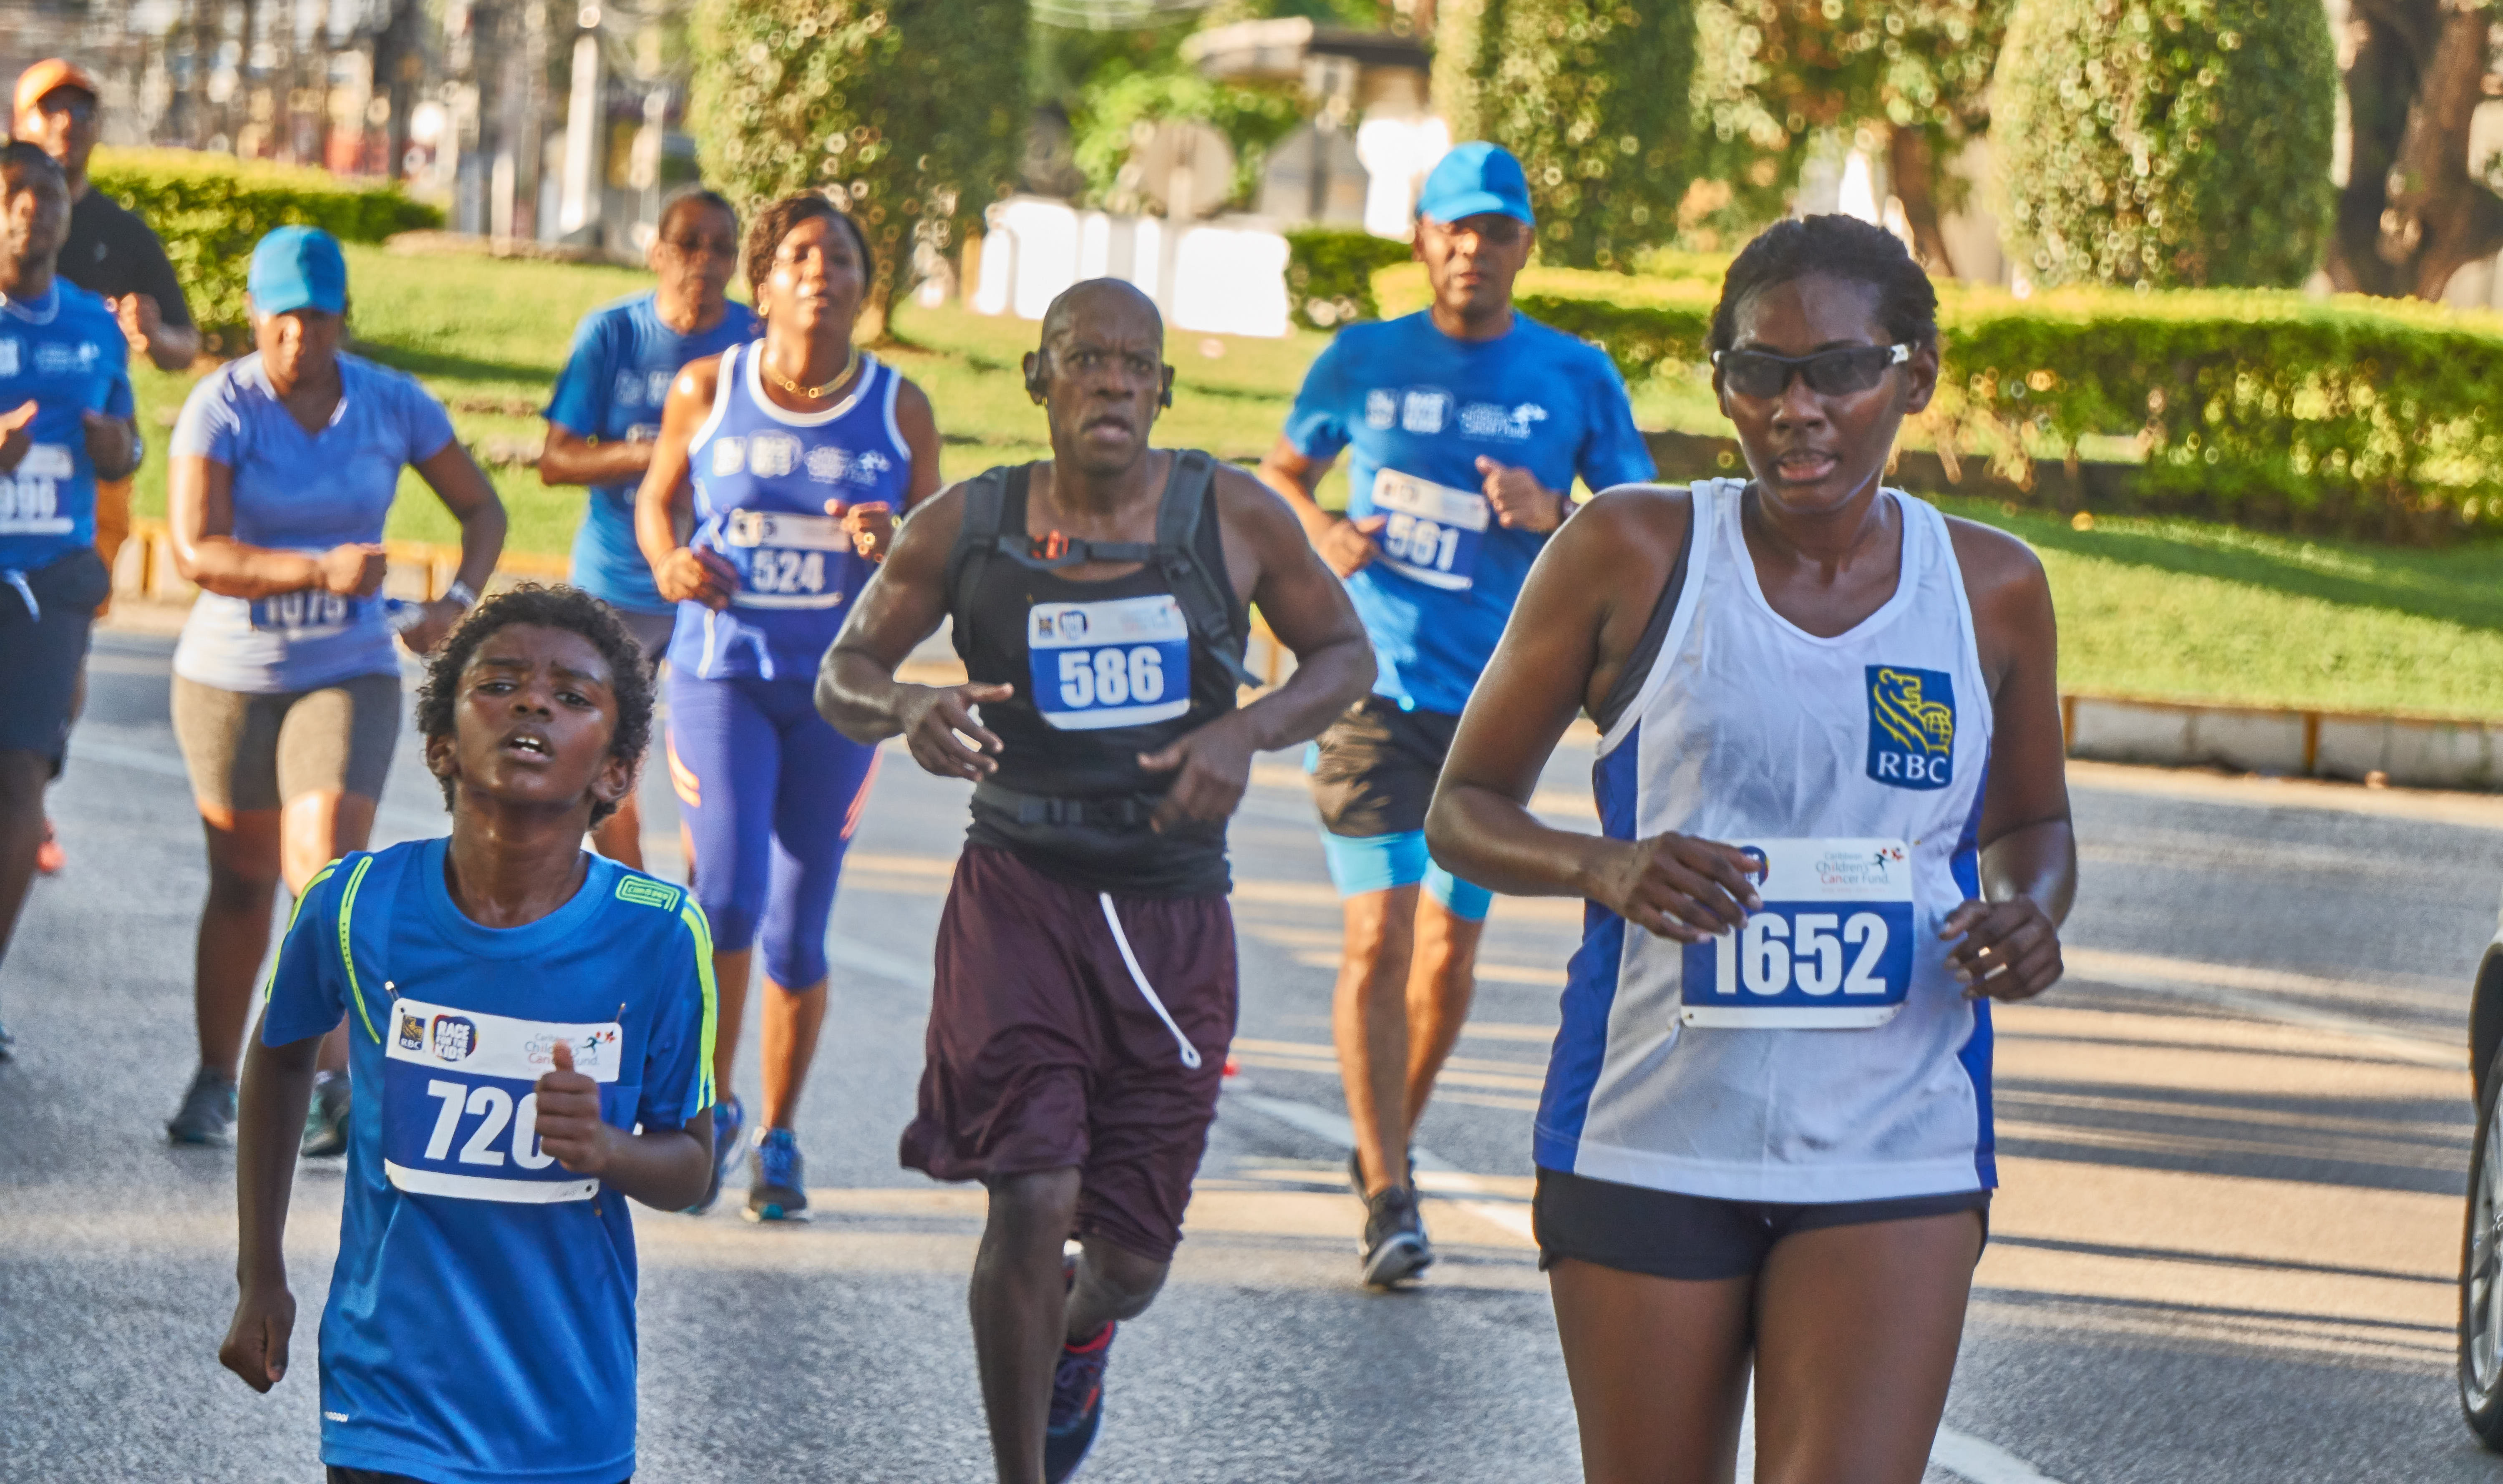 PIcs from RBC15k and 5k